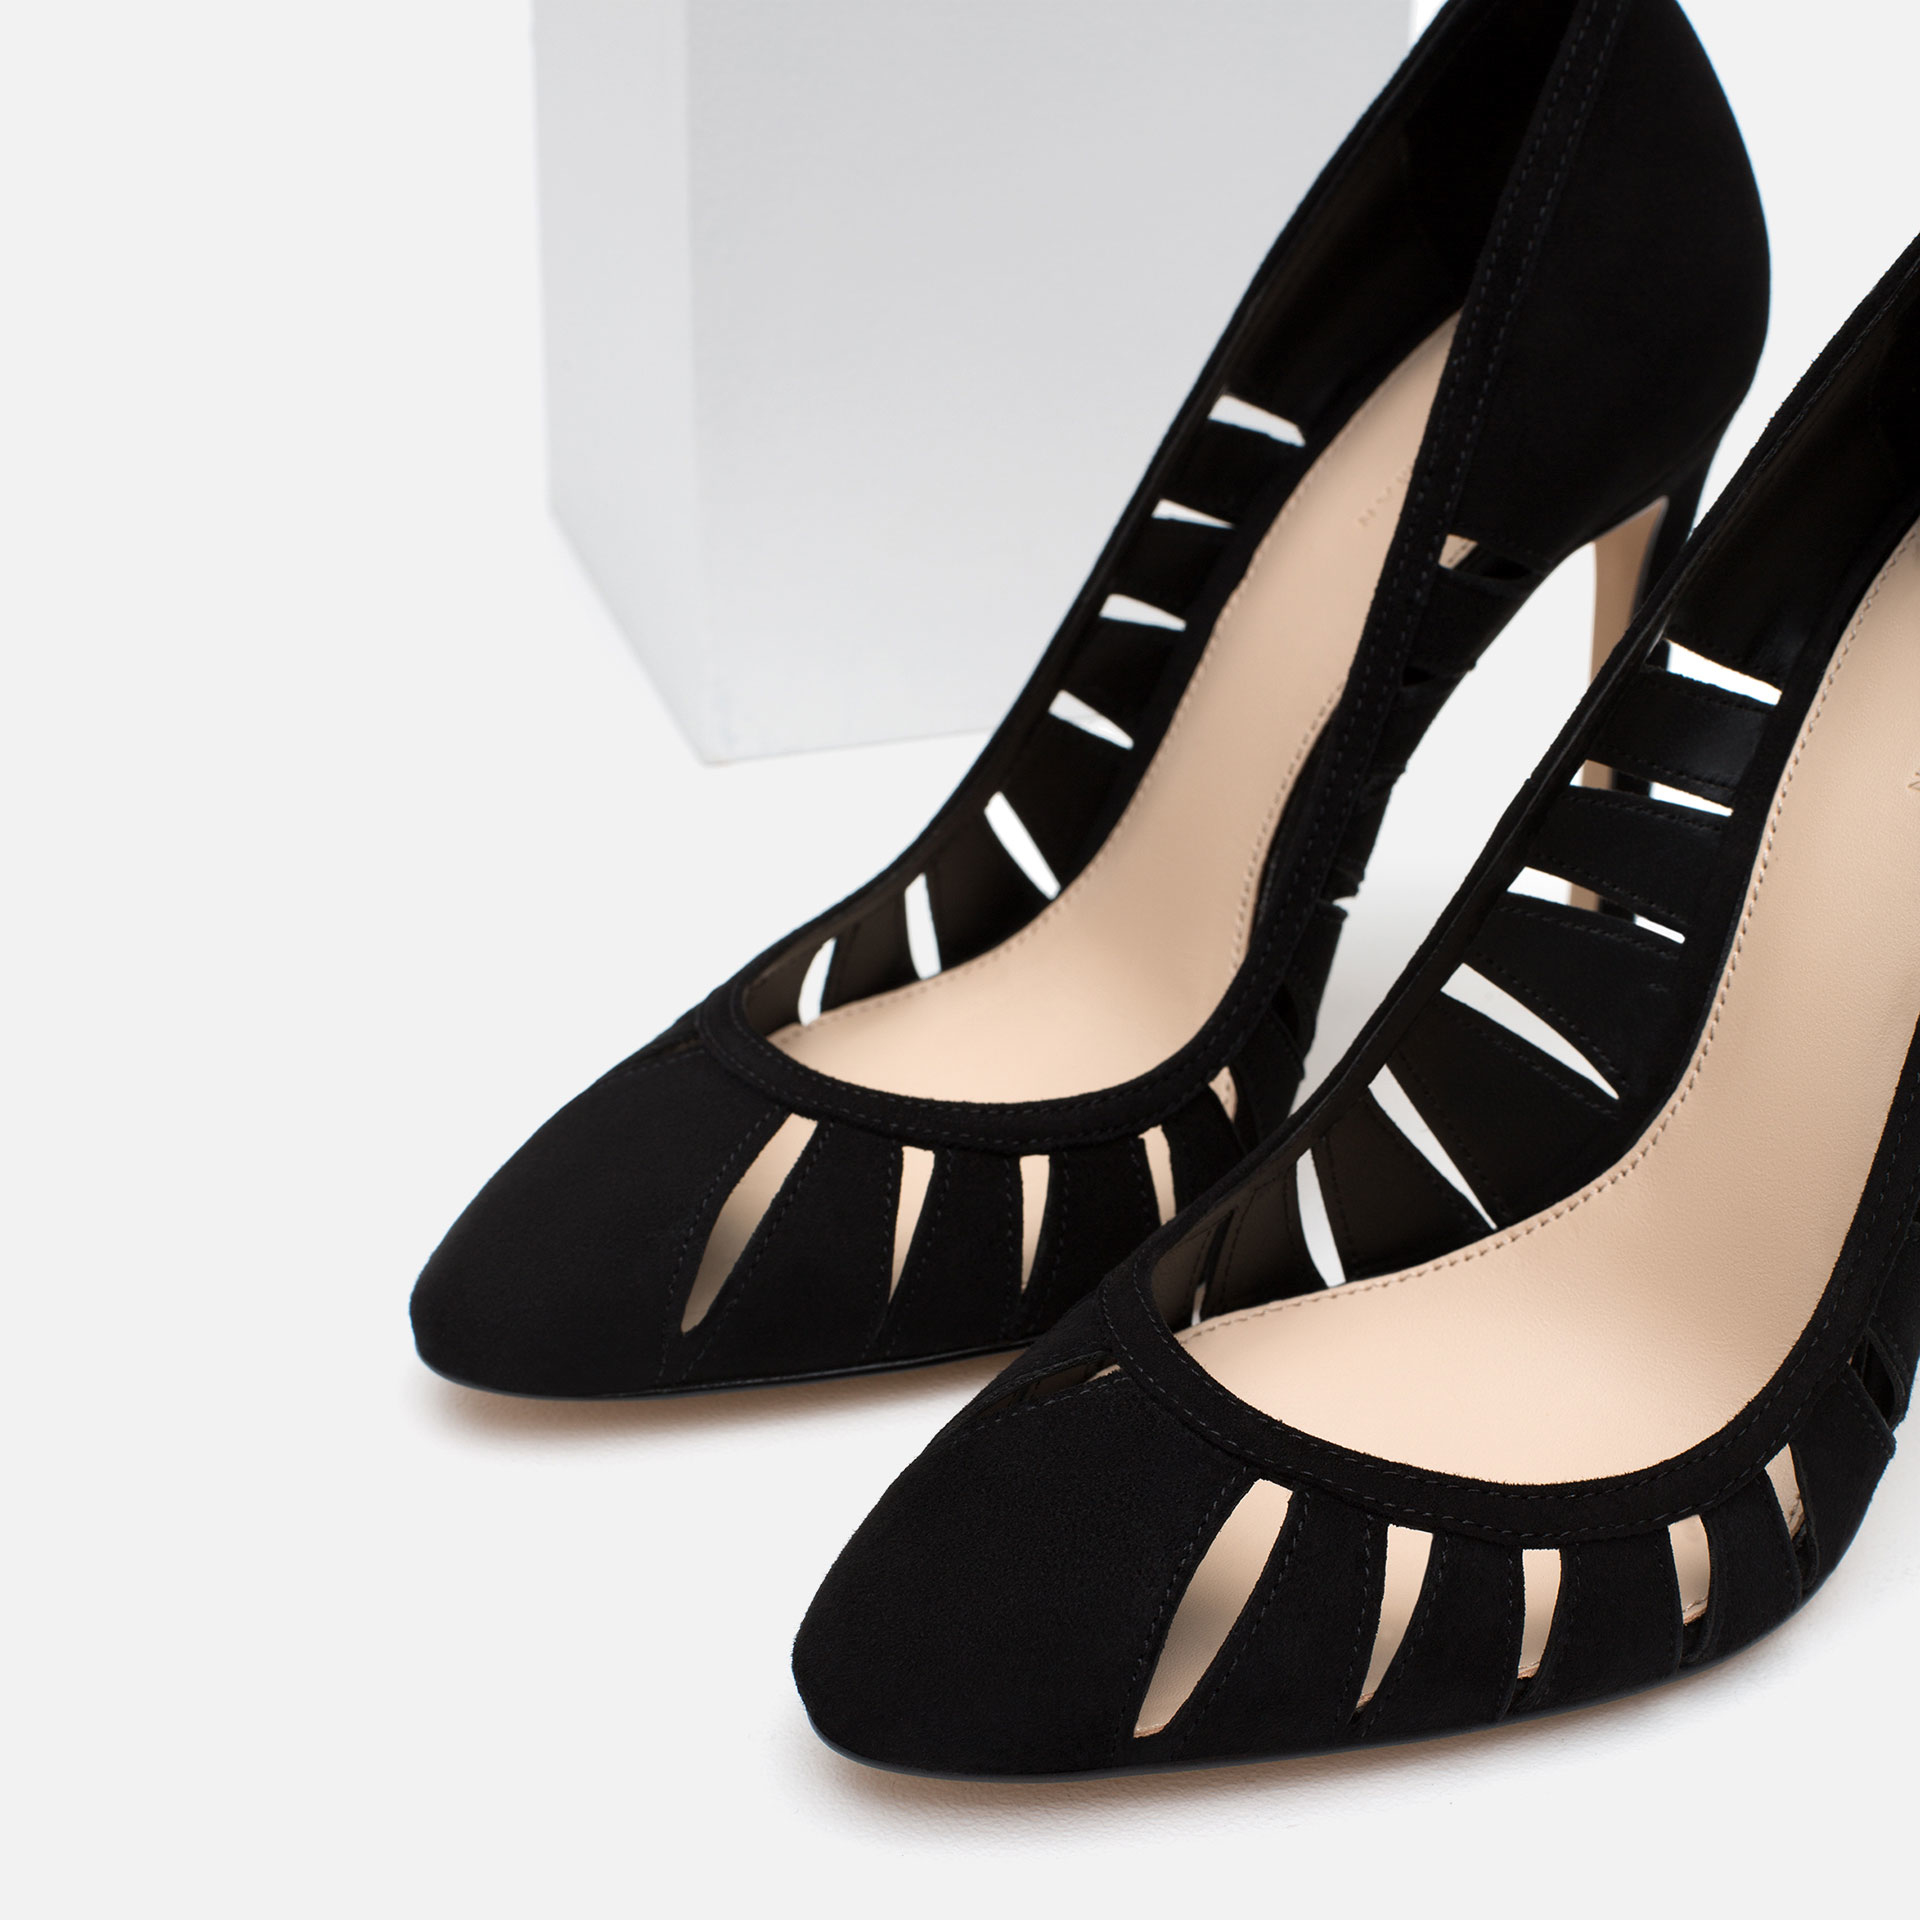 Black Leather High Heel Shoes